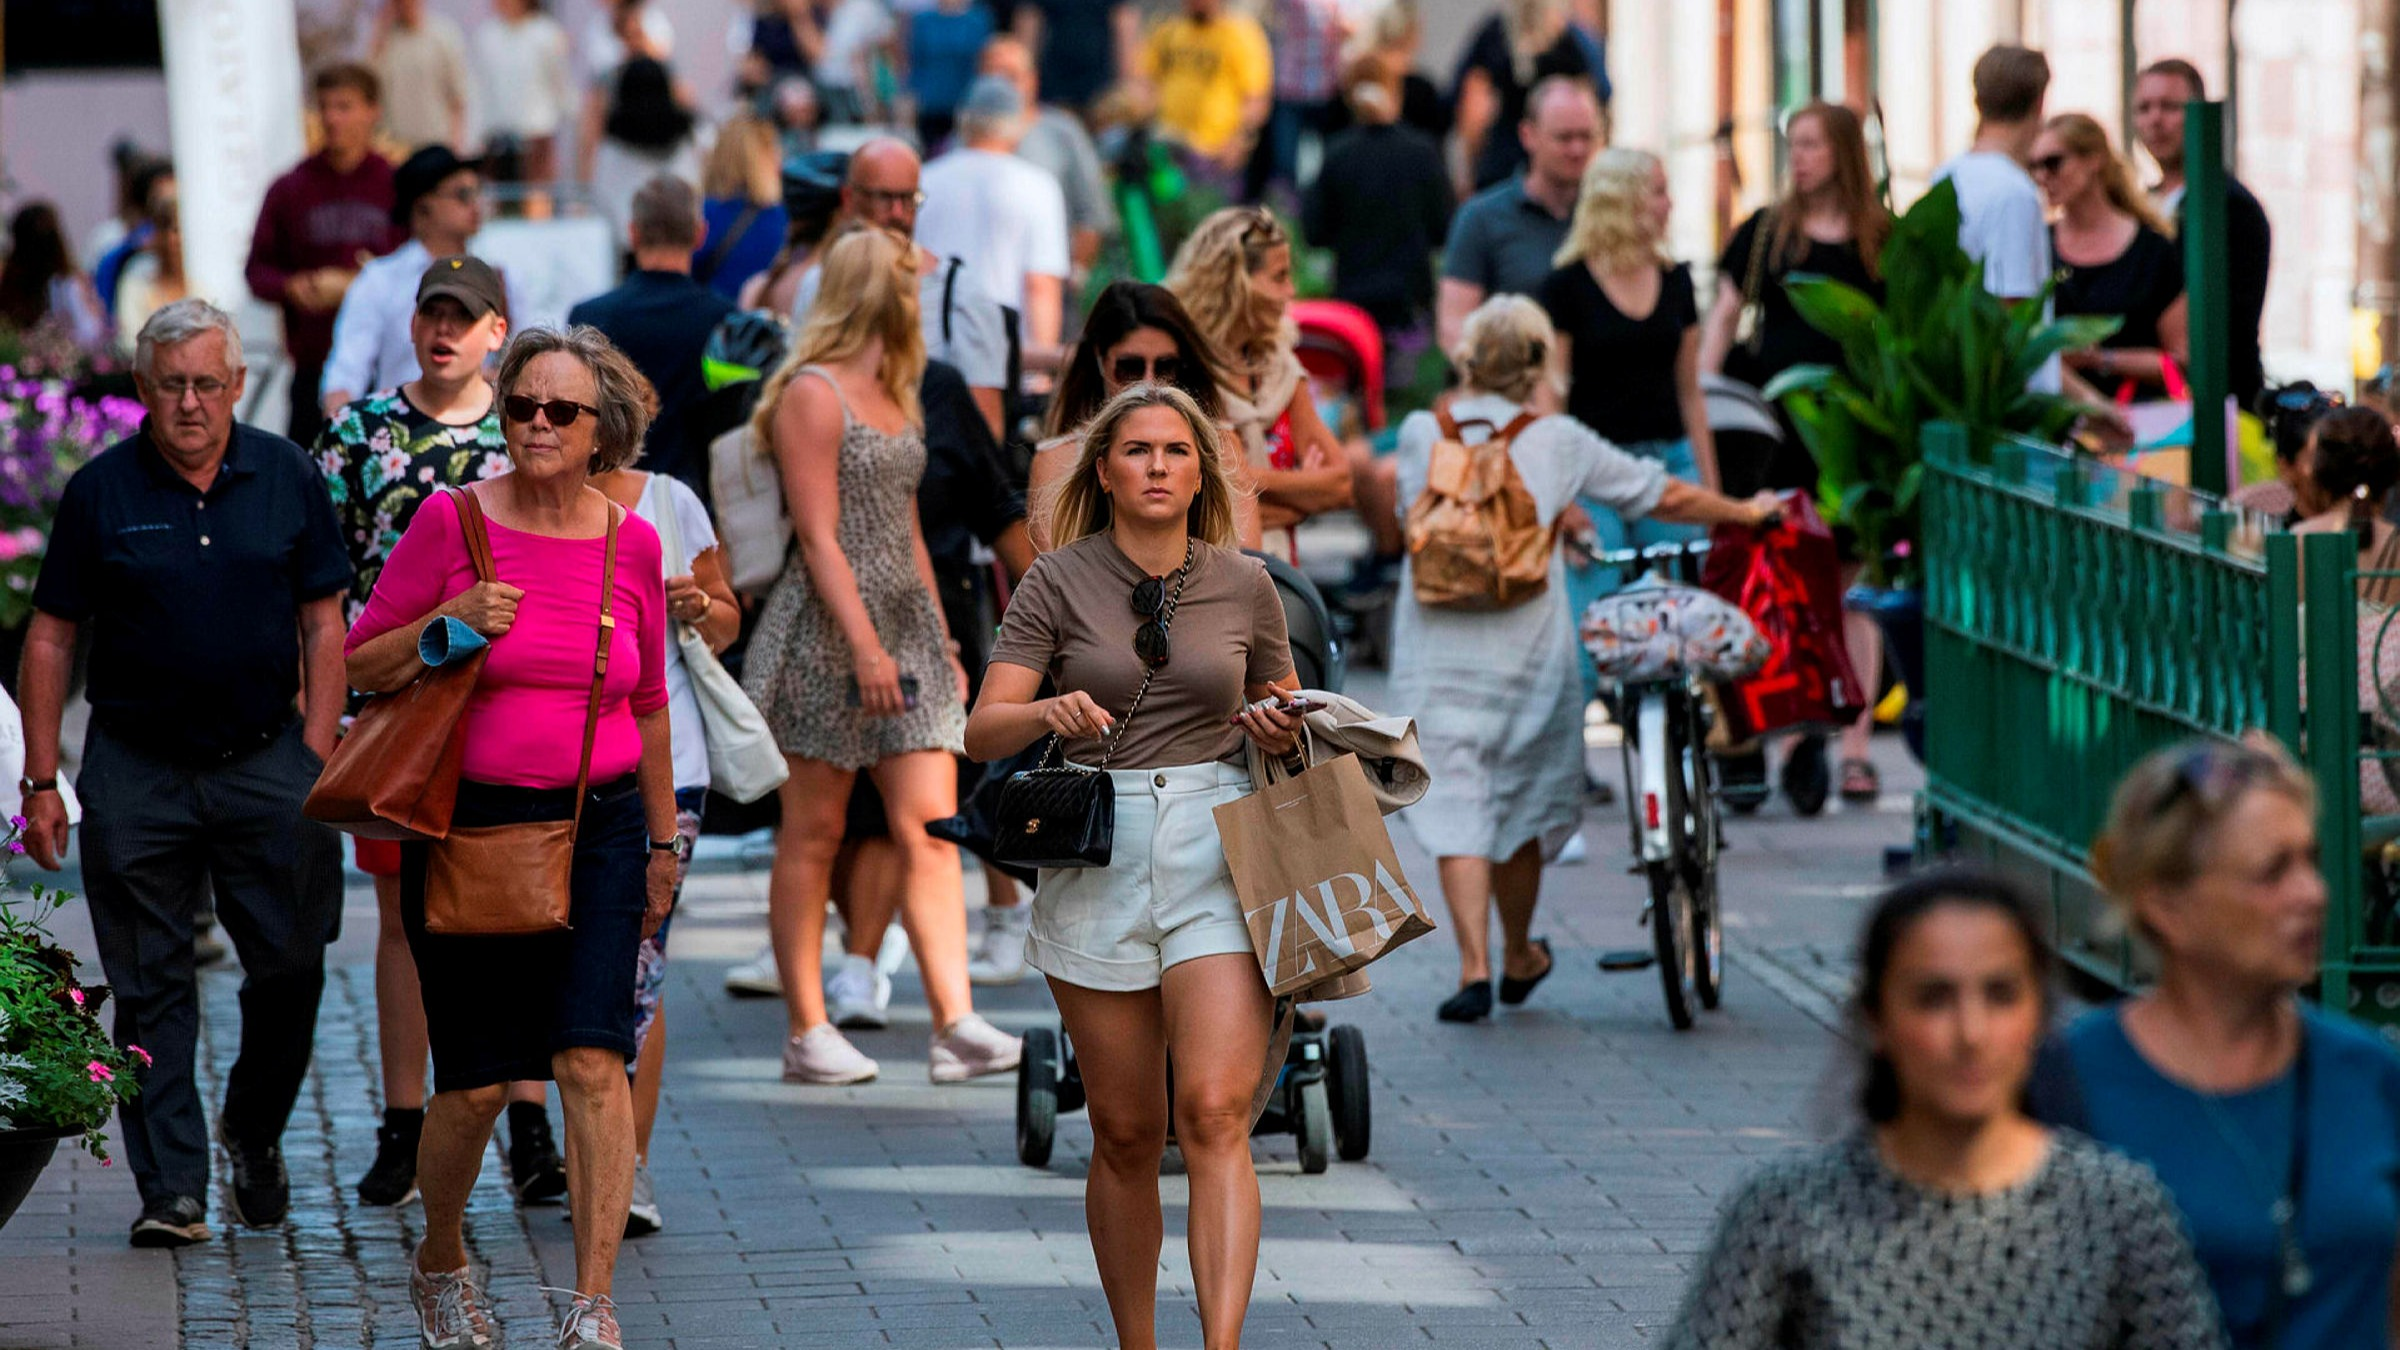 Coronavirus outlier Sweden chooses its own path on face masks | Financial  Times